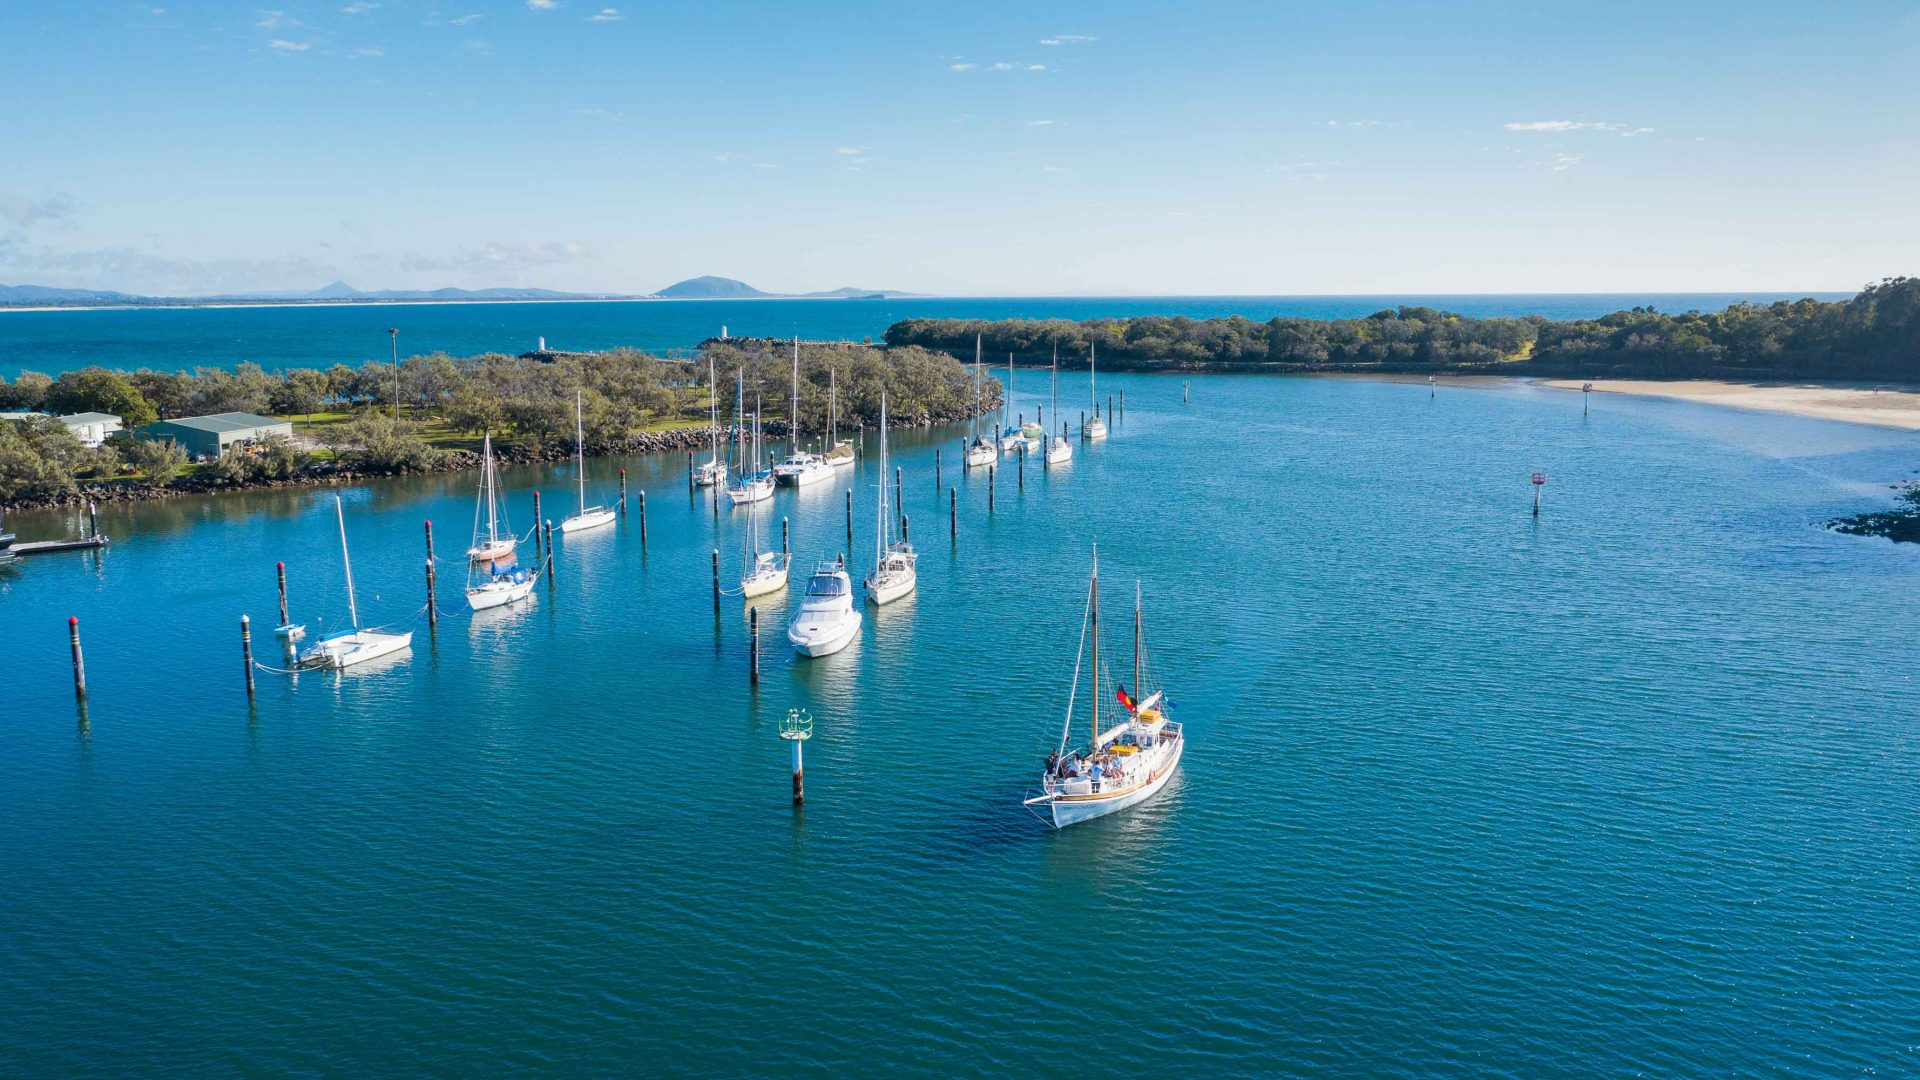 Meet the man sharing Mooloolaba history from a 113-year-old boat